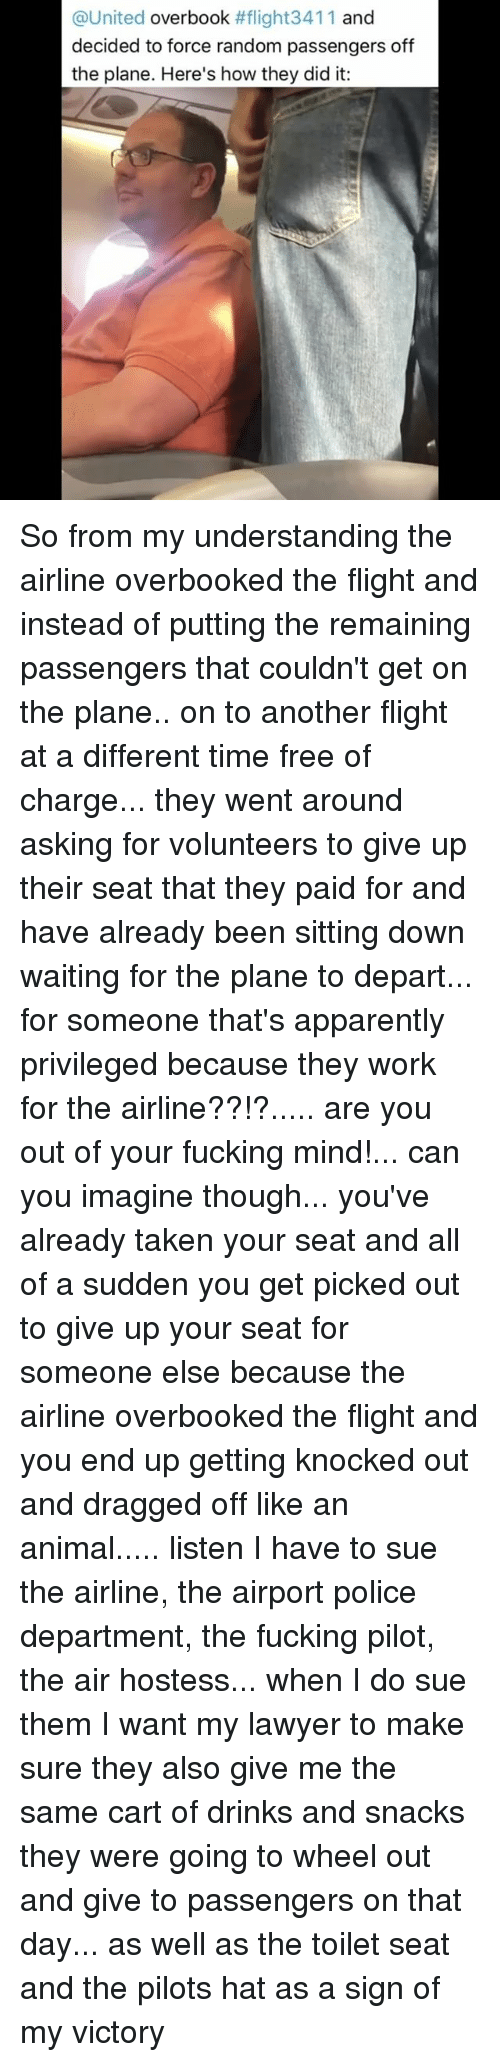 Apparently, Fucking, and Lawyer: @United  overbook  #flight3411 and  decided to force random passengers off  the plane. Here's how they did it: So from my understanding the airline overbooked the flight and instead of putting the remaining passengers that couldn't get on the plane.. on to another flight at a different time free of charge... they went around asking for volunteers to give up their seat that they paid for and have already been sitting down waiting for the plane to depart... for someone that's apparently privileged because they work for the airline??!?..... are you out of your fucking mind!... can you imagine though... you've already taken your seat and all of a sudden you get picked out to give up your seat for someone else because the airline overbooked the flight and you end up getting knocked out and dragged off like an animal..... listen I have to sue the airline, the airport police department, the fucking pilot, the air hostess... when I do sue them I want my lawyer to make sure they also give me the same cart of drinks and snacks they were going to wheel out and give to passengers on that day... as well as the toilet seat and the pilots hat as a sign of my victory